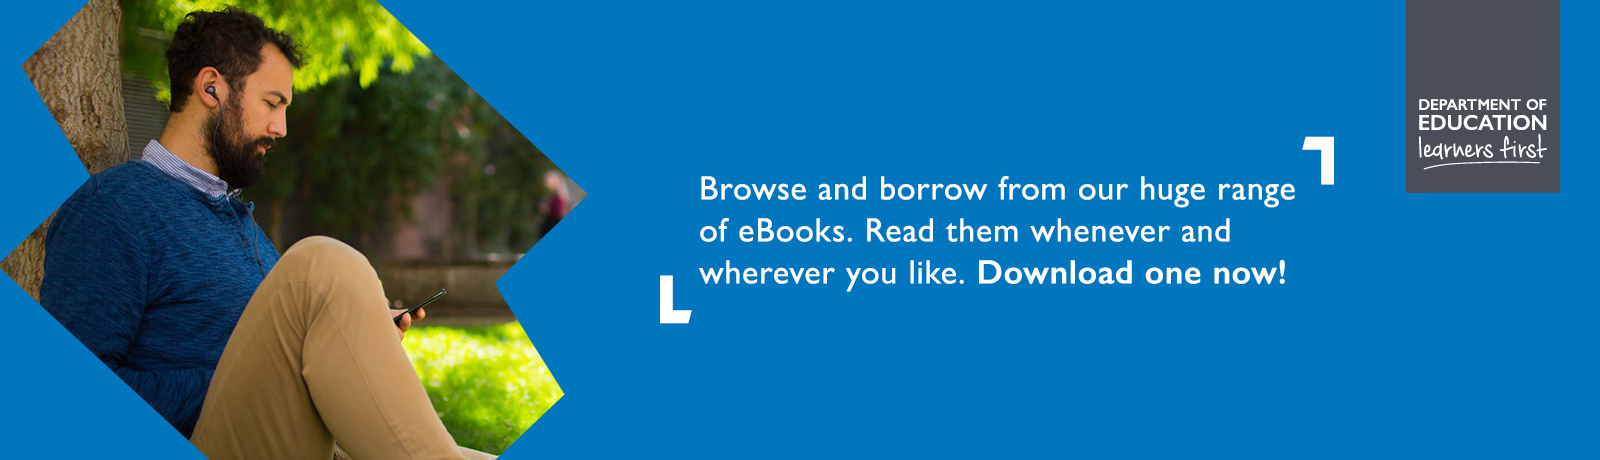 Browse and borrow from our huge range of eBooks. Read them whenever and wherever you like. Download one now!